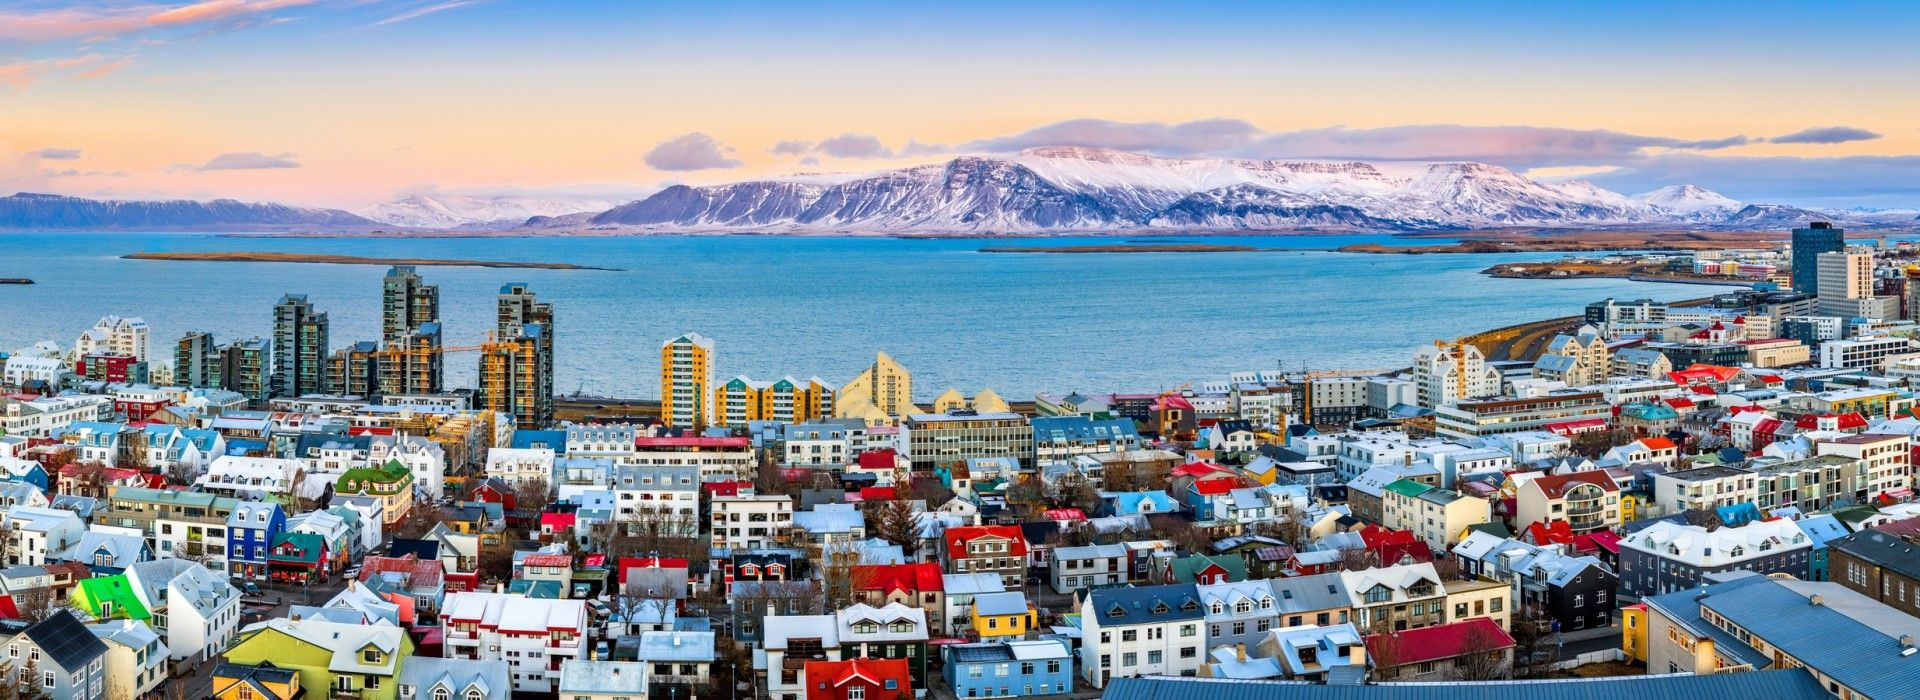 Beach, romance, getaways and relaxation Tours in Northern Europe